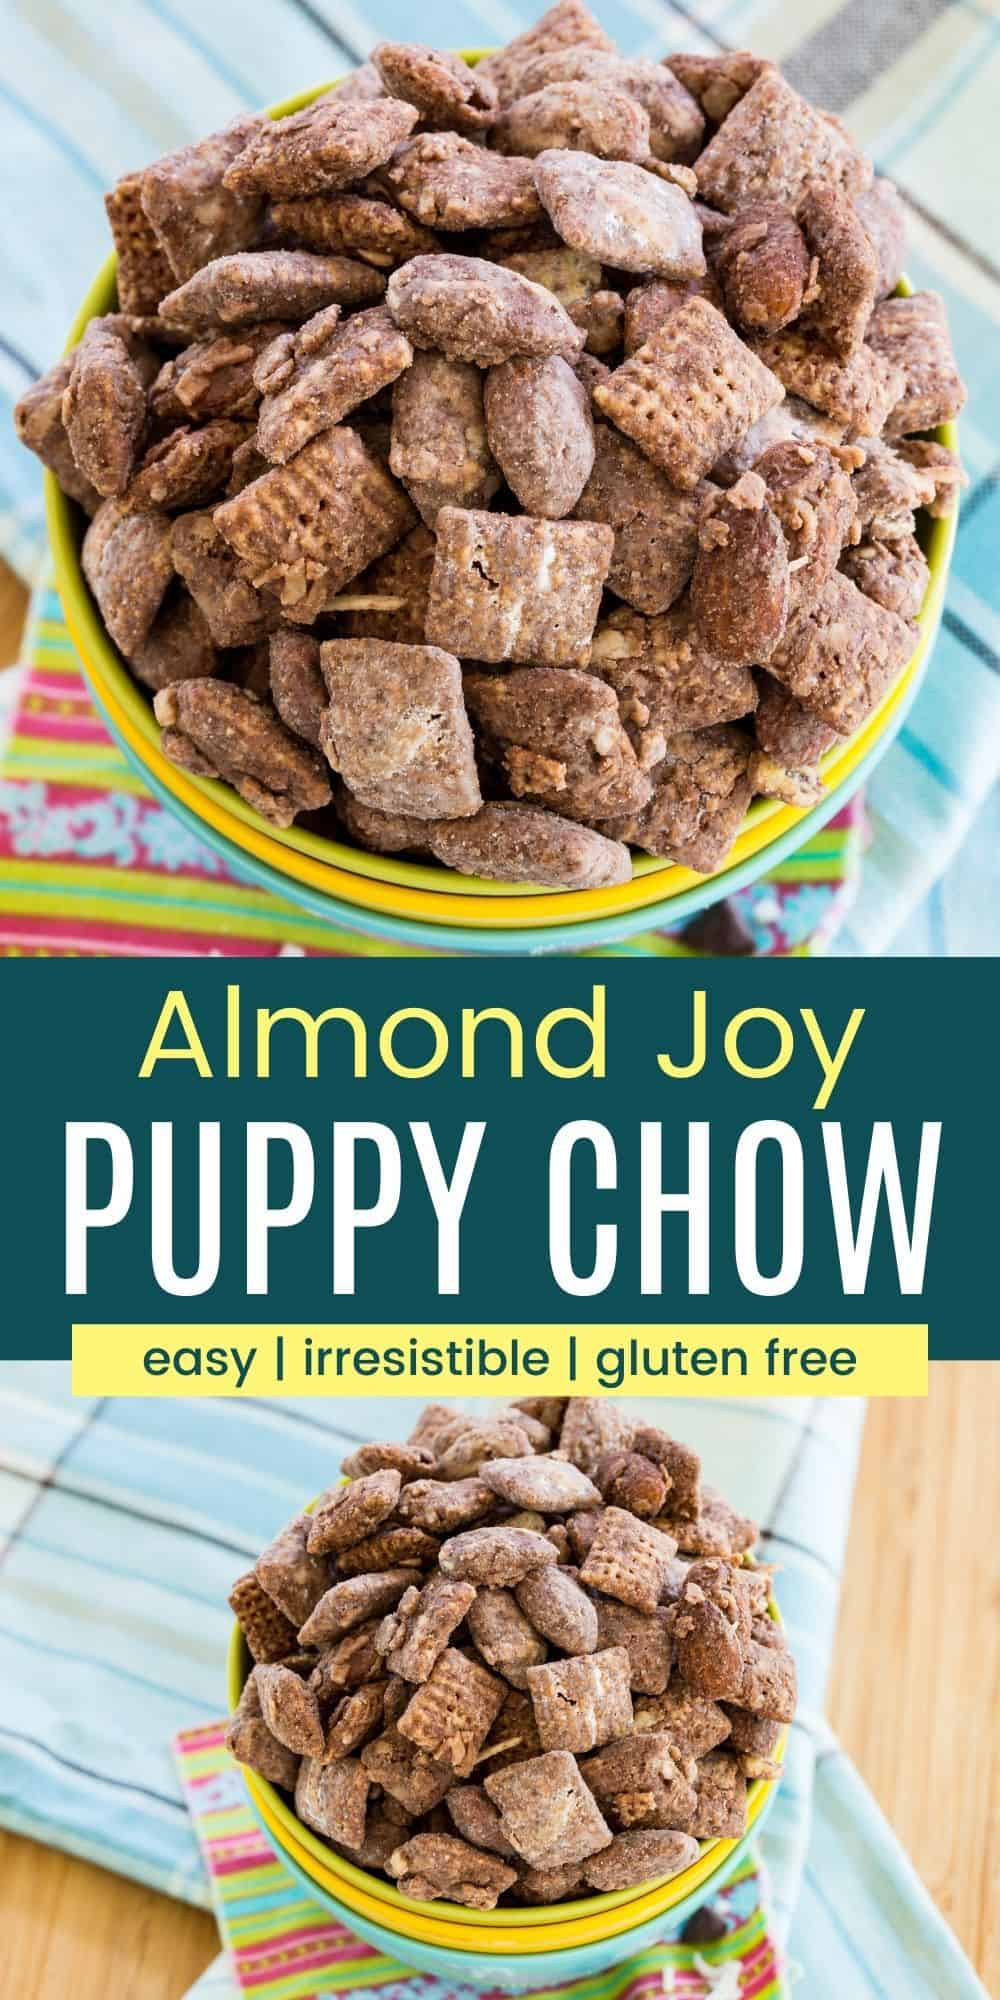 Almond Joy Puppy Chow - these coconut chocolate almond butter Muddy Buddies have the flavors you love from the classic candy bar in an easy, sweet snack recipe. It can also be made gluten free and vegan. #almondjoy #puppychow #muddybuddies #glutenfree